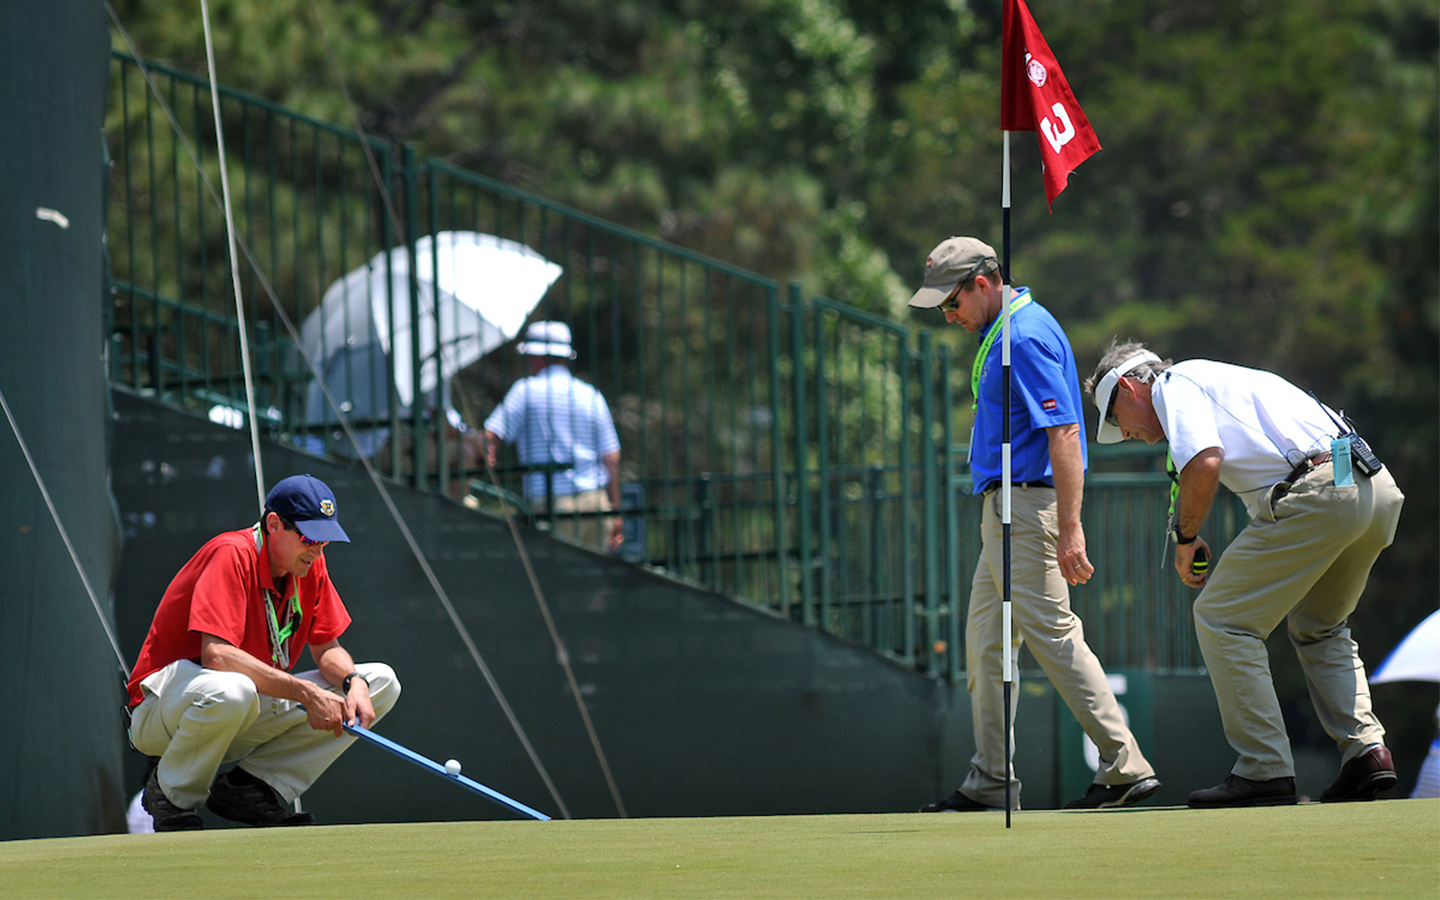 NC State alumni test greens at the Womens US Opens Gold Tournament